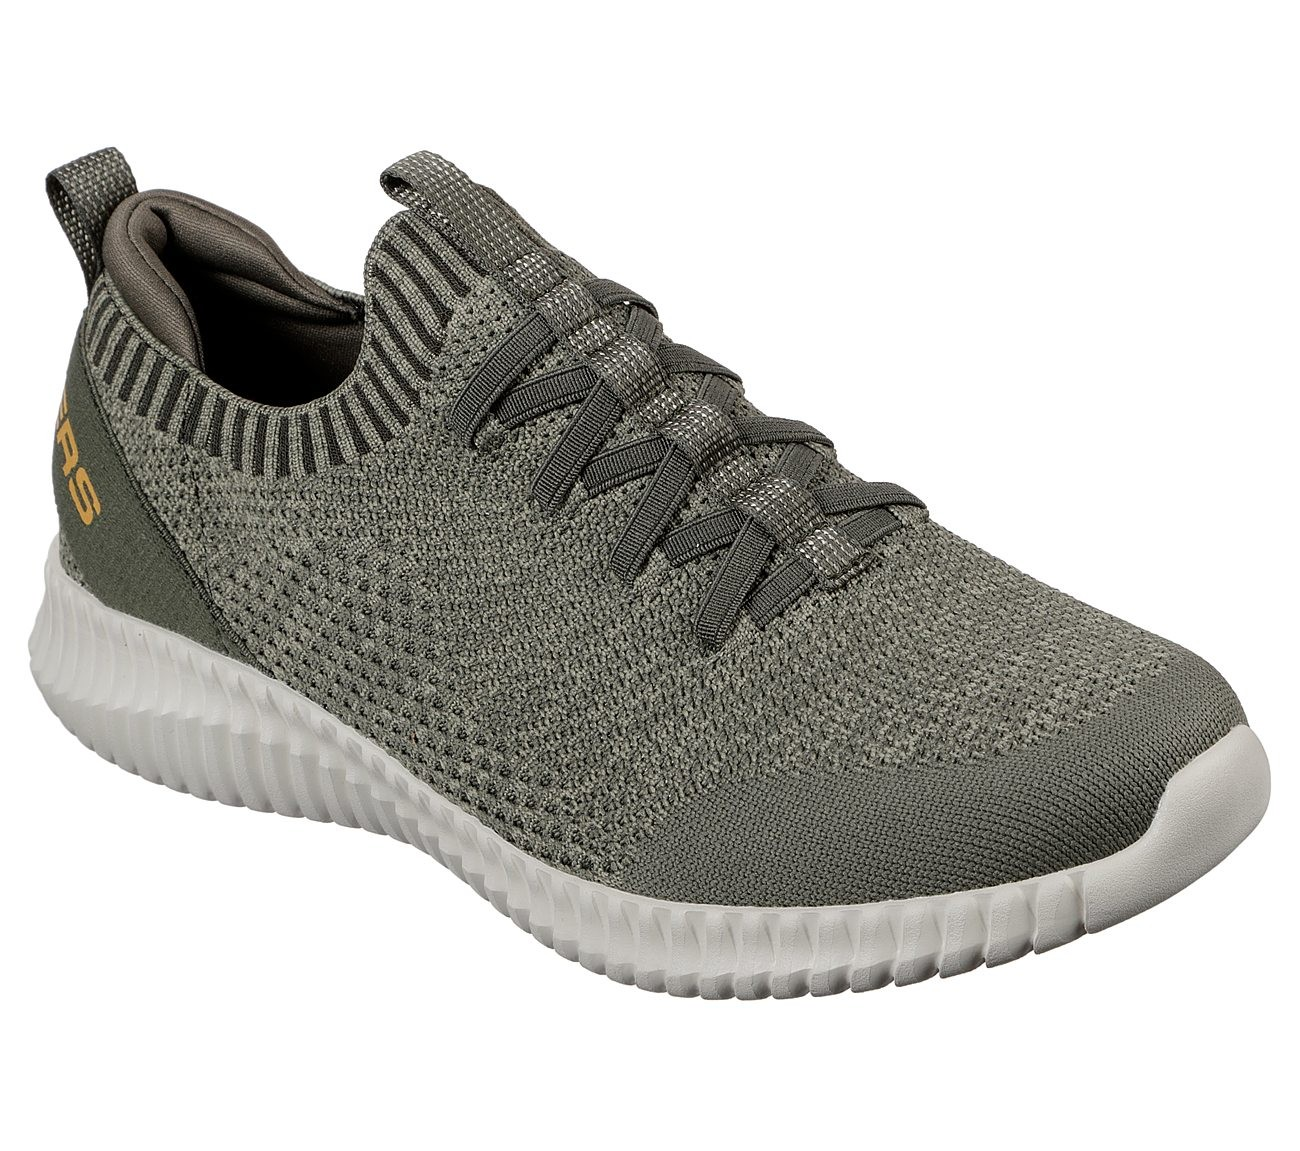 skechers you knit slip on shoes